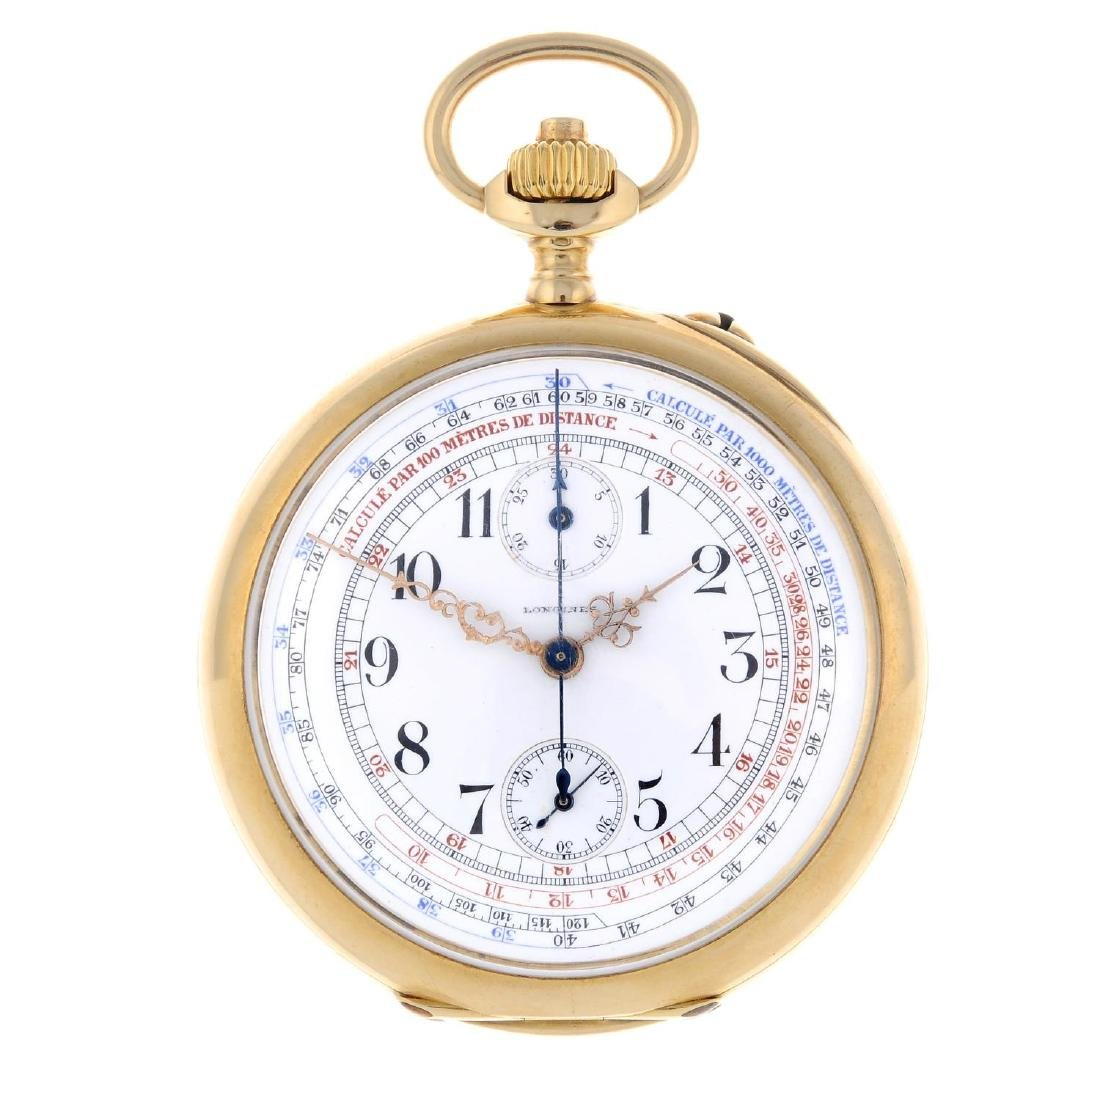 An open face chronograph pocket watch by Longines.